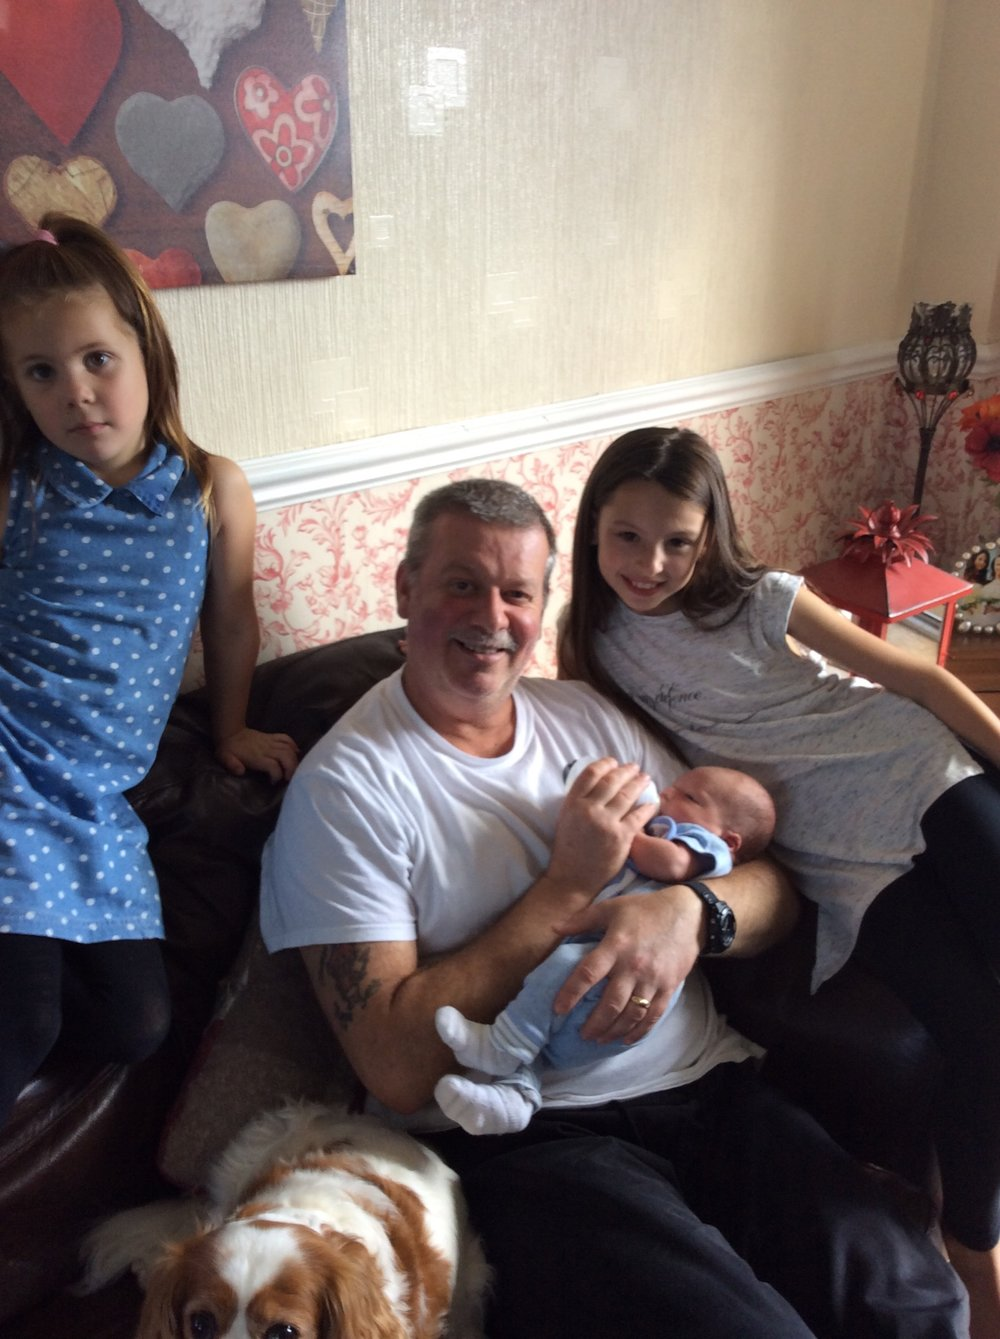 There's Ava, Me and Bubbs, and Macie. You can just see Mollie peeping out the bottom of the photo too...